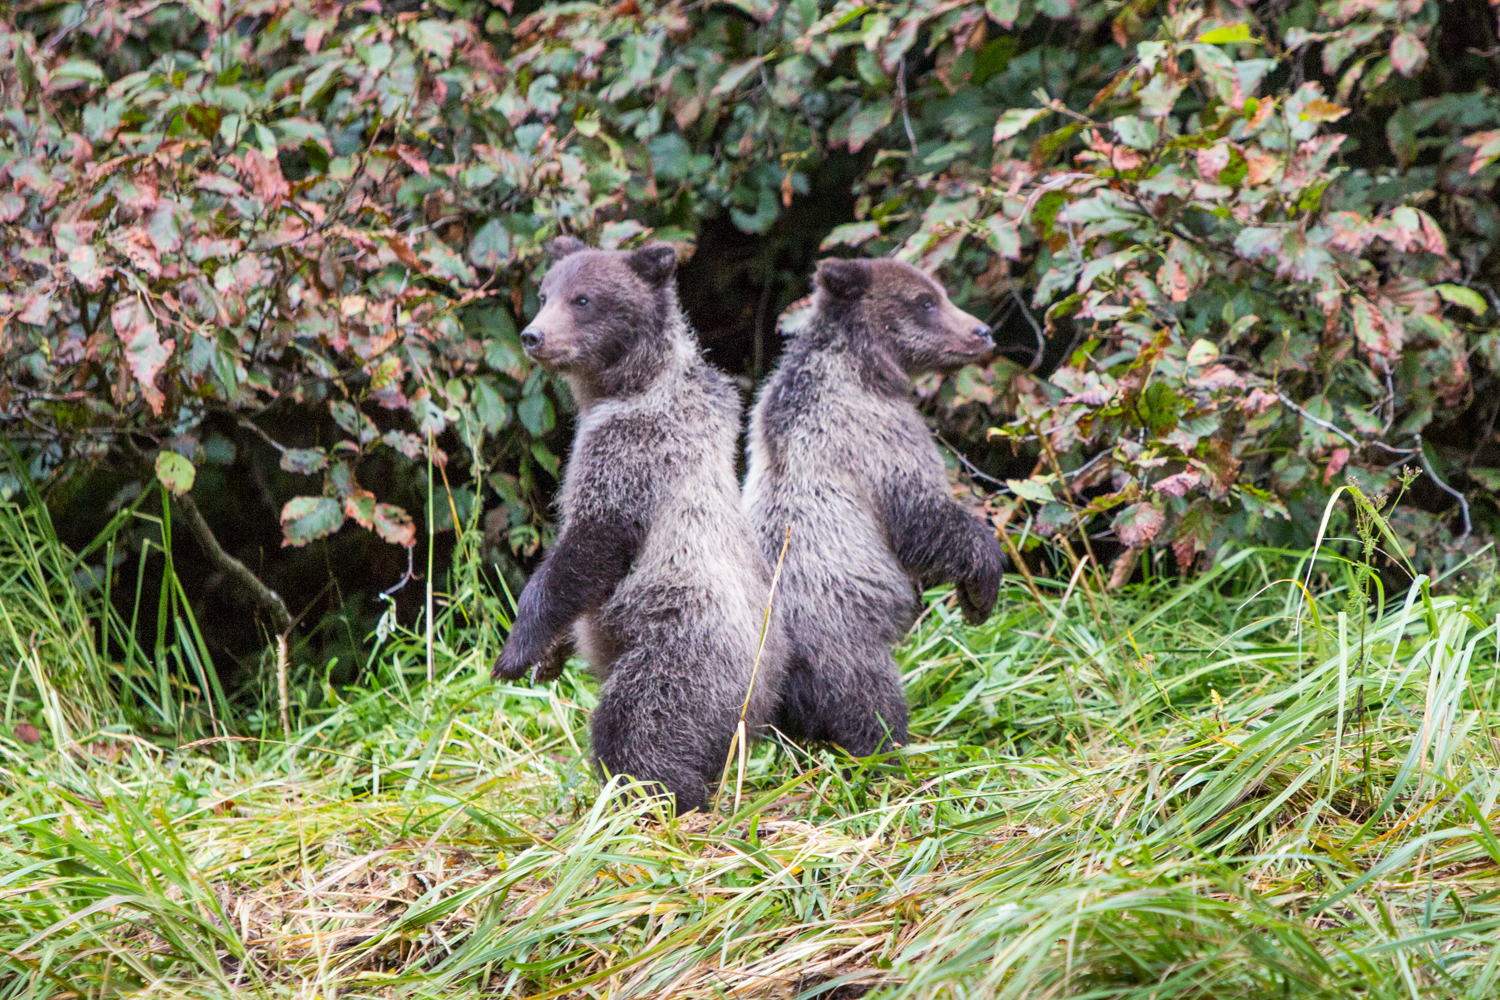 In Pavlof Harbor, Alaska, two brown bear cubs stand up and look for their mother.